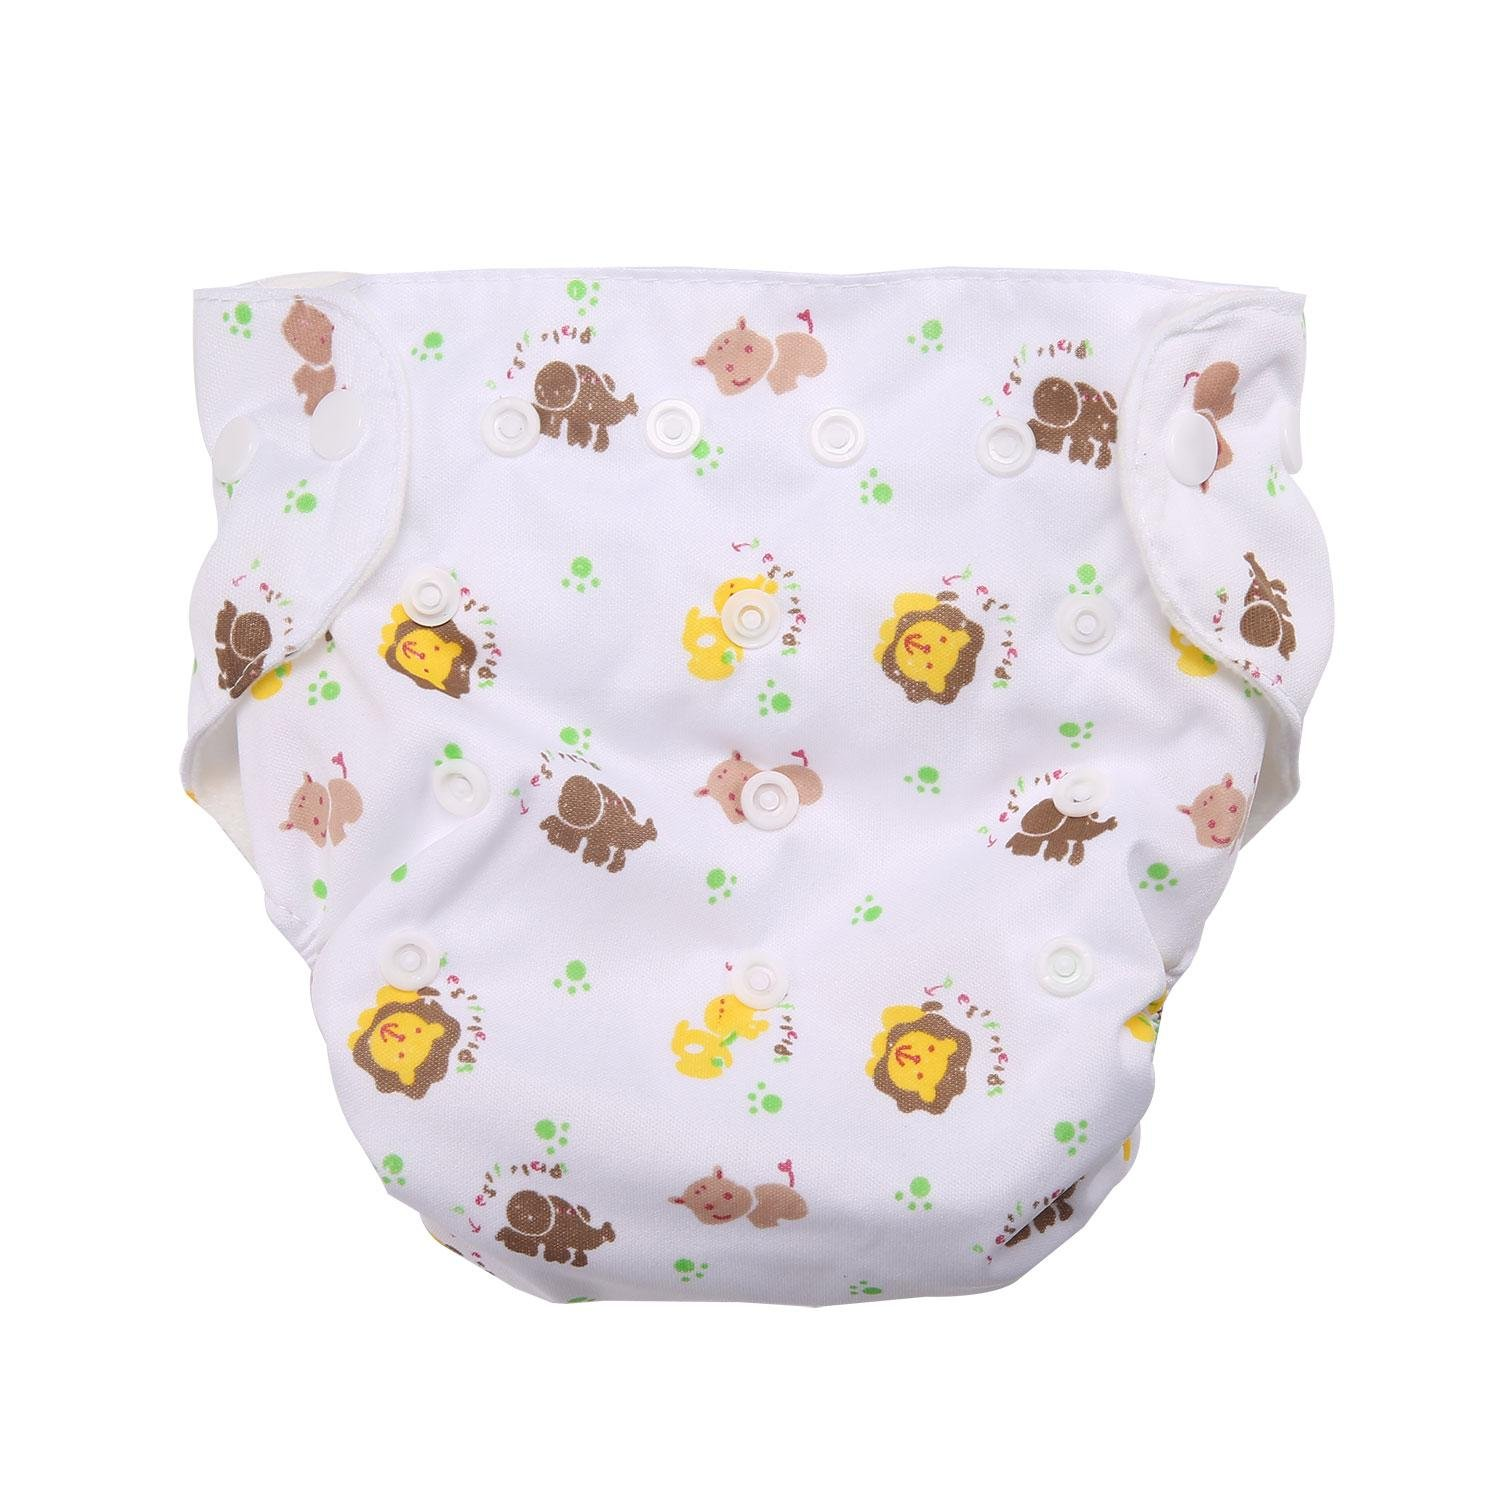 Womdee Reusable Swim Diaper with Adjustable Buckle,/Fashion Design Baby Swim Diaper Fits Diapers Sizes Ultra Premium Quality for Eco-Friendly Baby Shower Gifts Sun Flower, Lion, Blue Dot